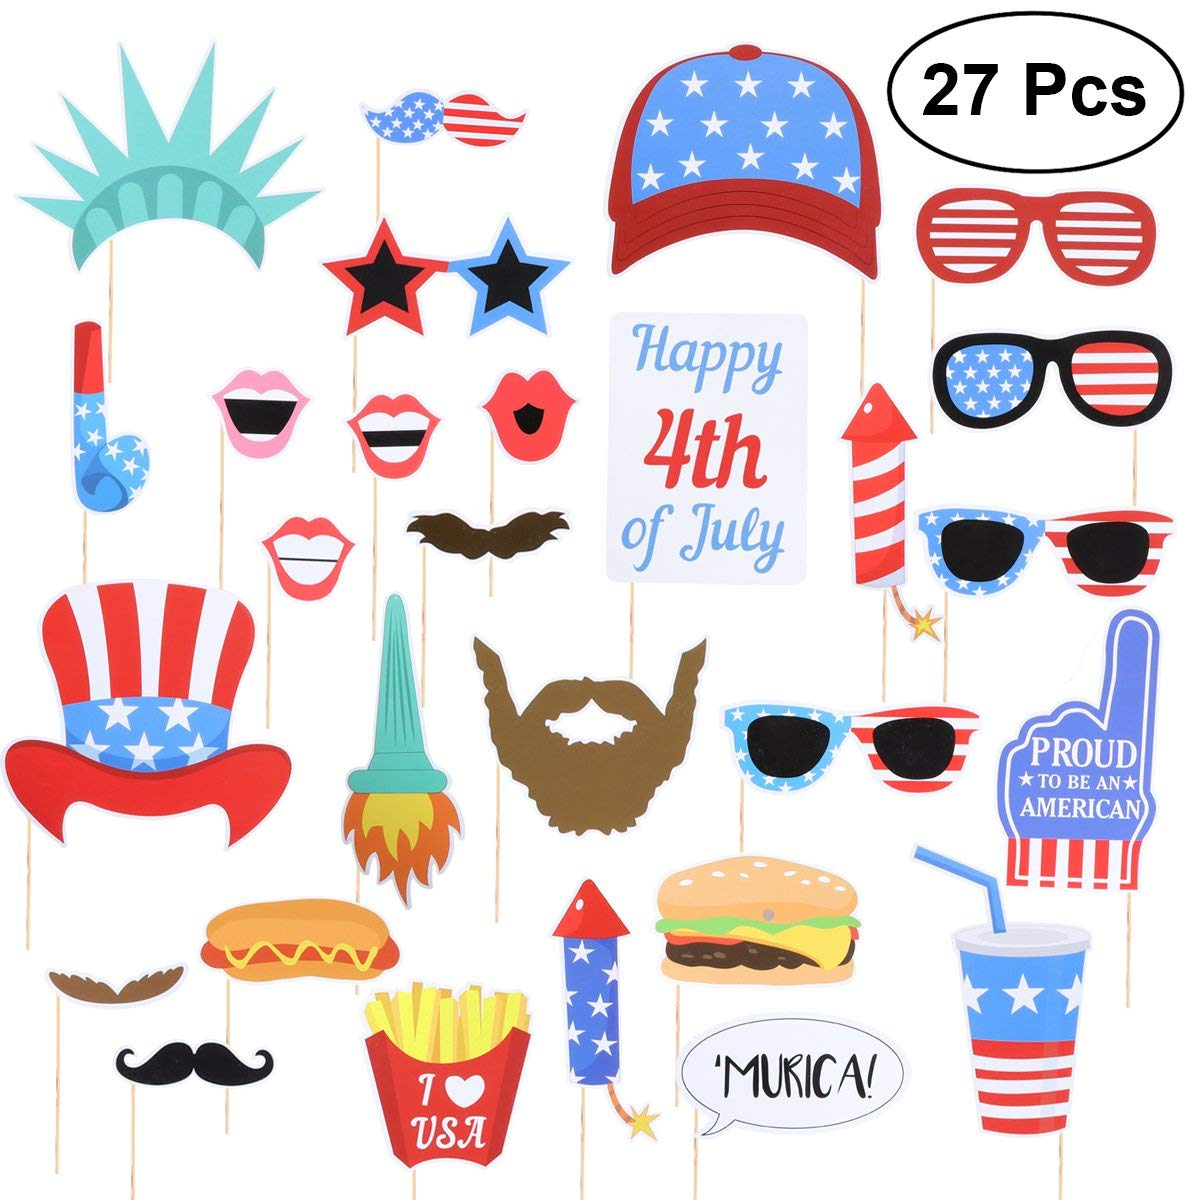 LUOEM Patriotic Photo Booth Props 4th of July Photo Props Independence Day Party Favors Supplies for American Independence Day Party Decorations (27 Pack)